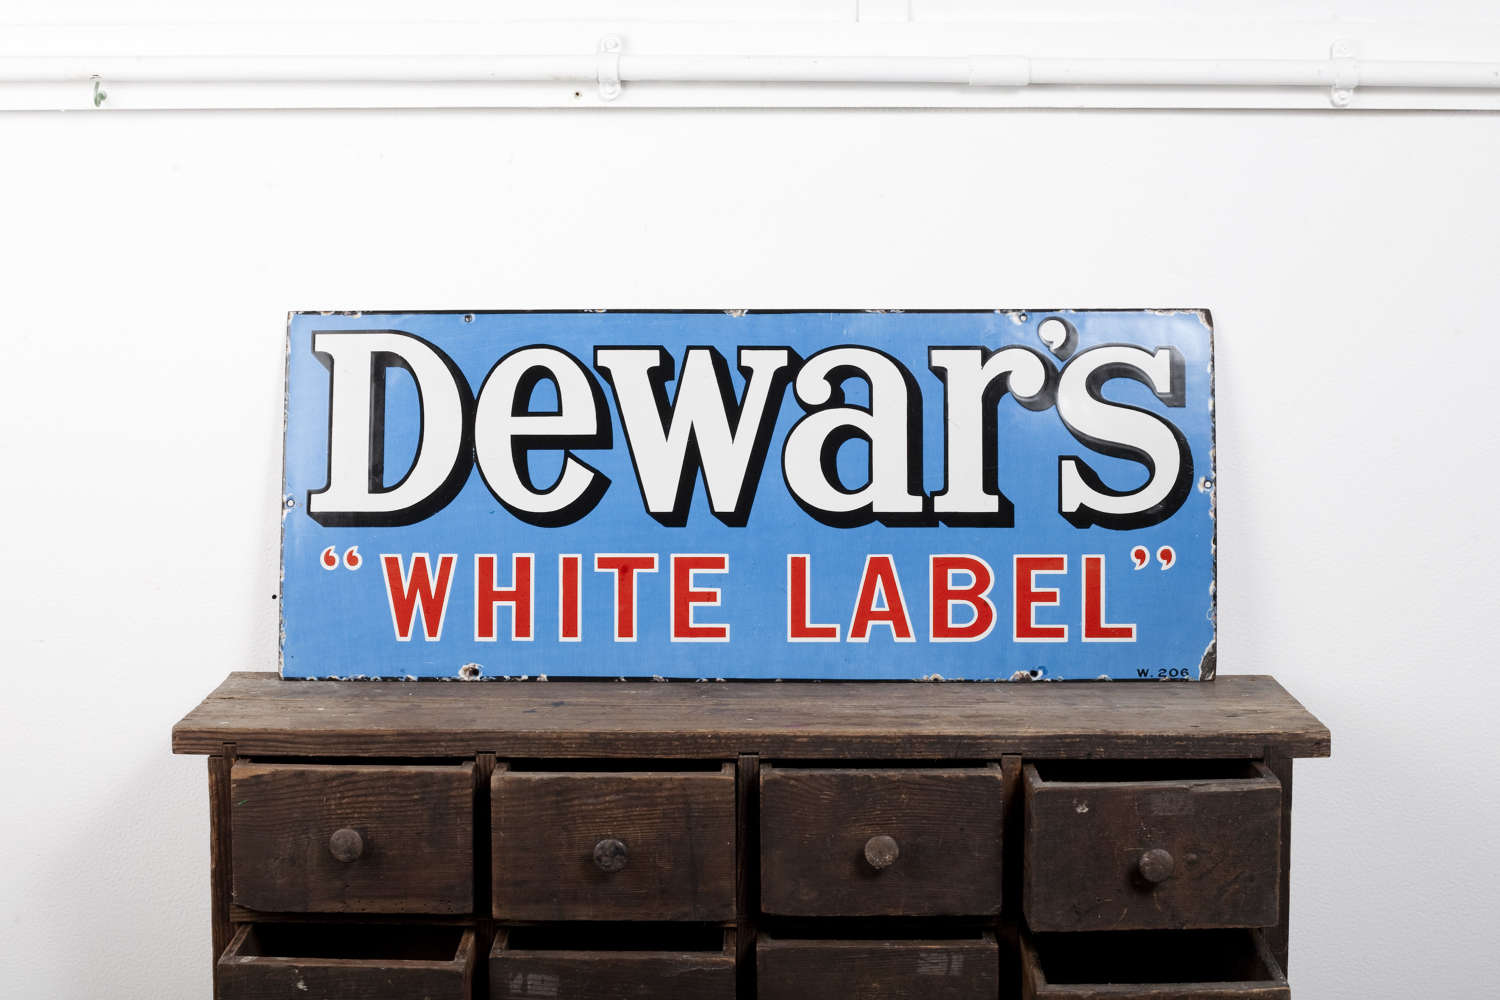 Original enamel advertising sign for Dewar's White Label Whisky